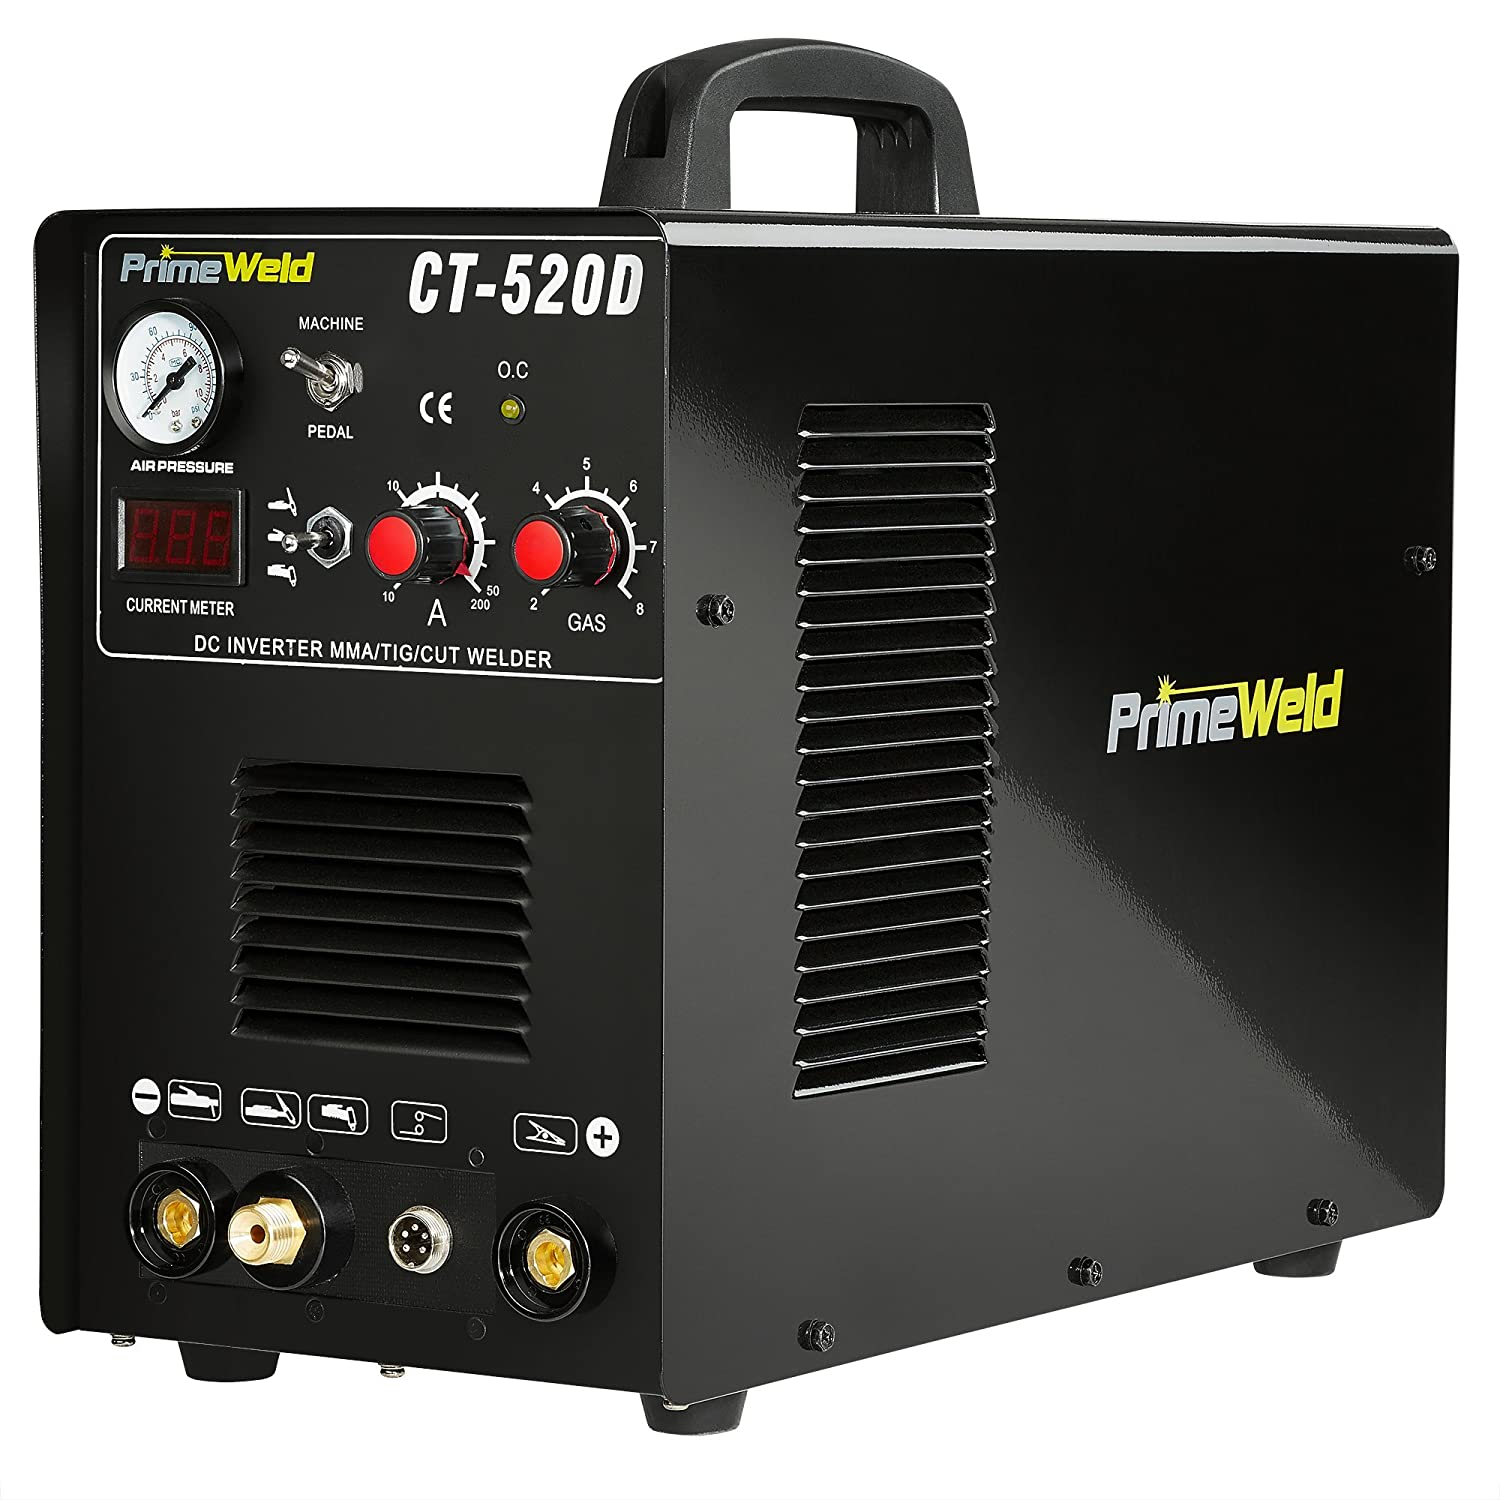 Top 10 Best Chinese Plasma Cutter Reviews in 2021 4